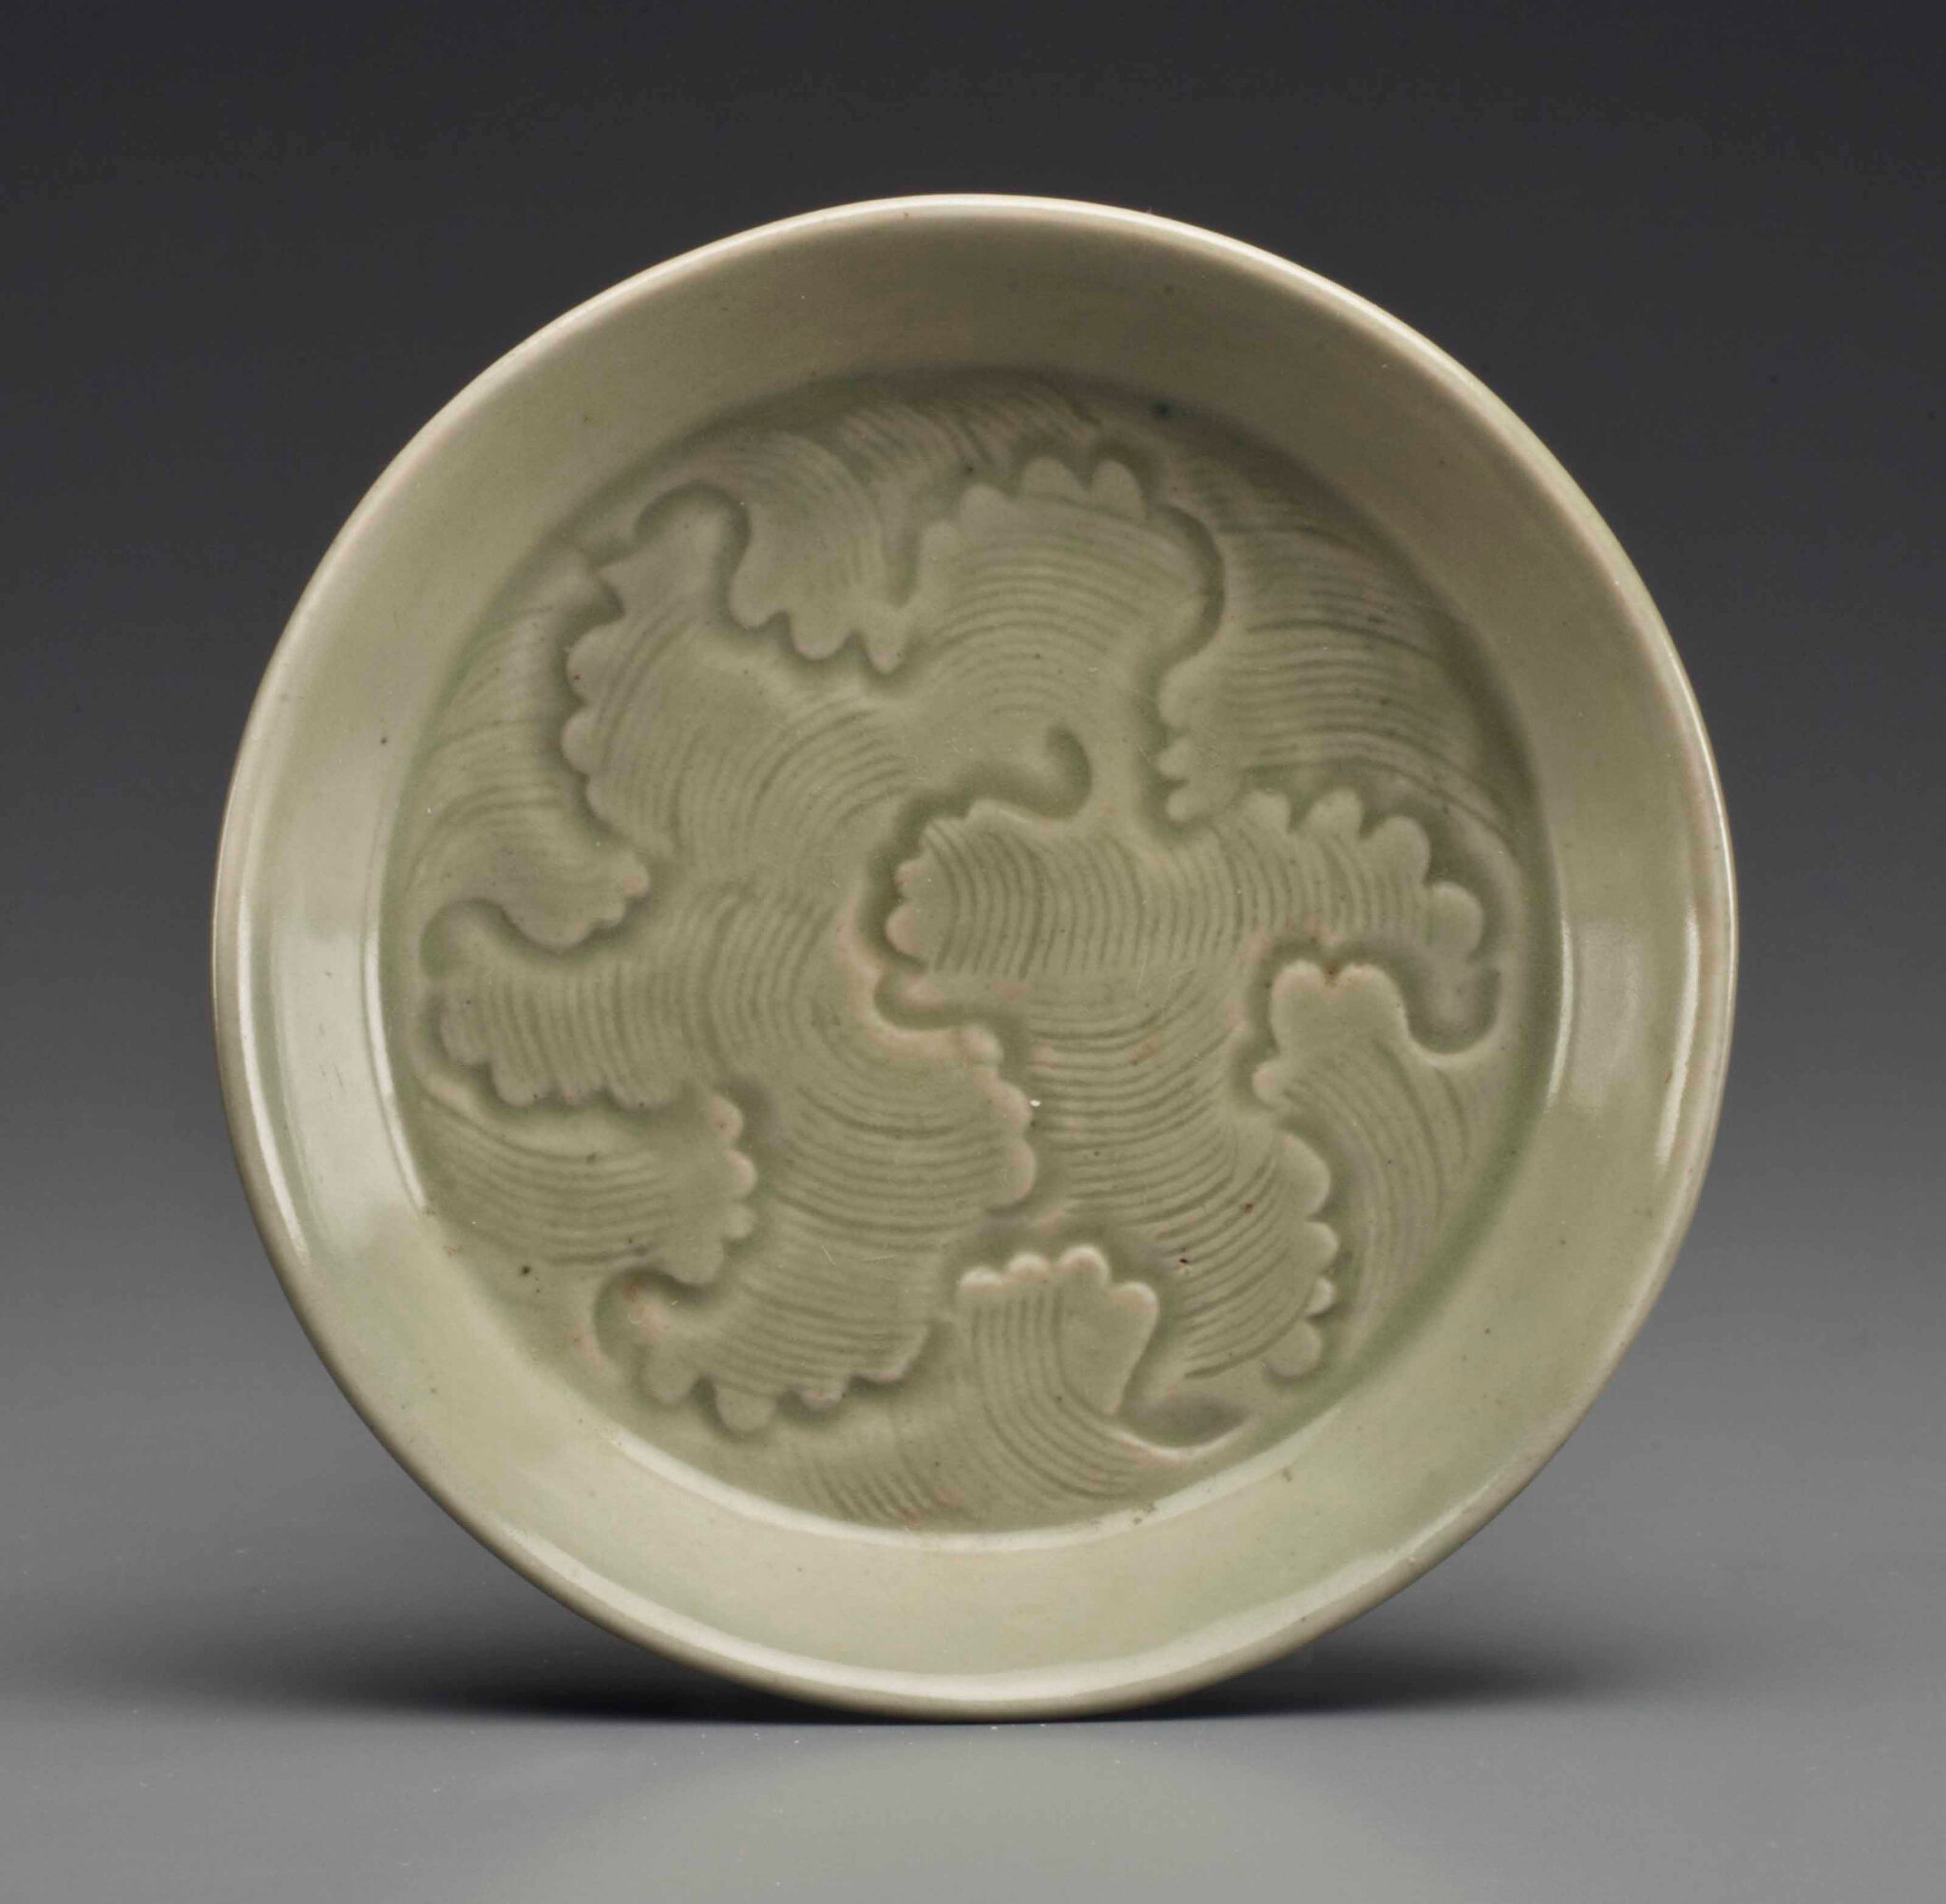 A small Yaozhou celadon carved saucer dish, Northern Song dynasty (960-1127)